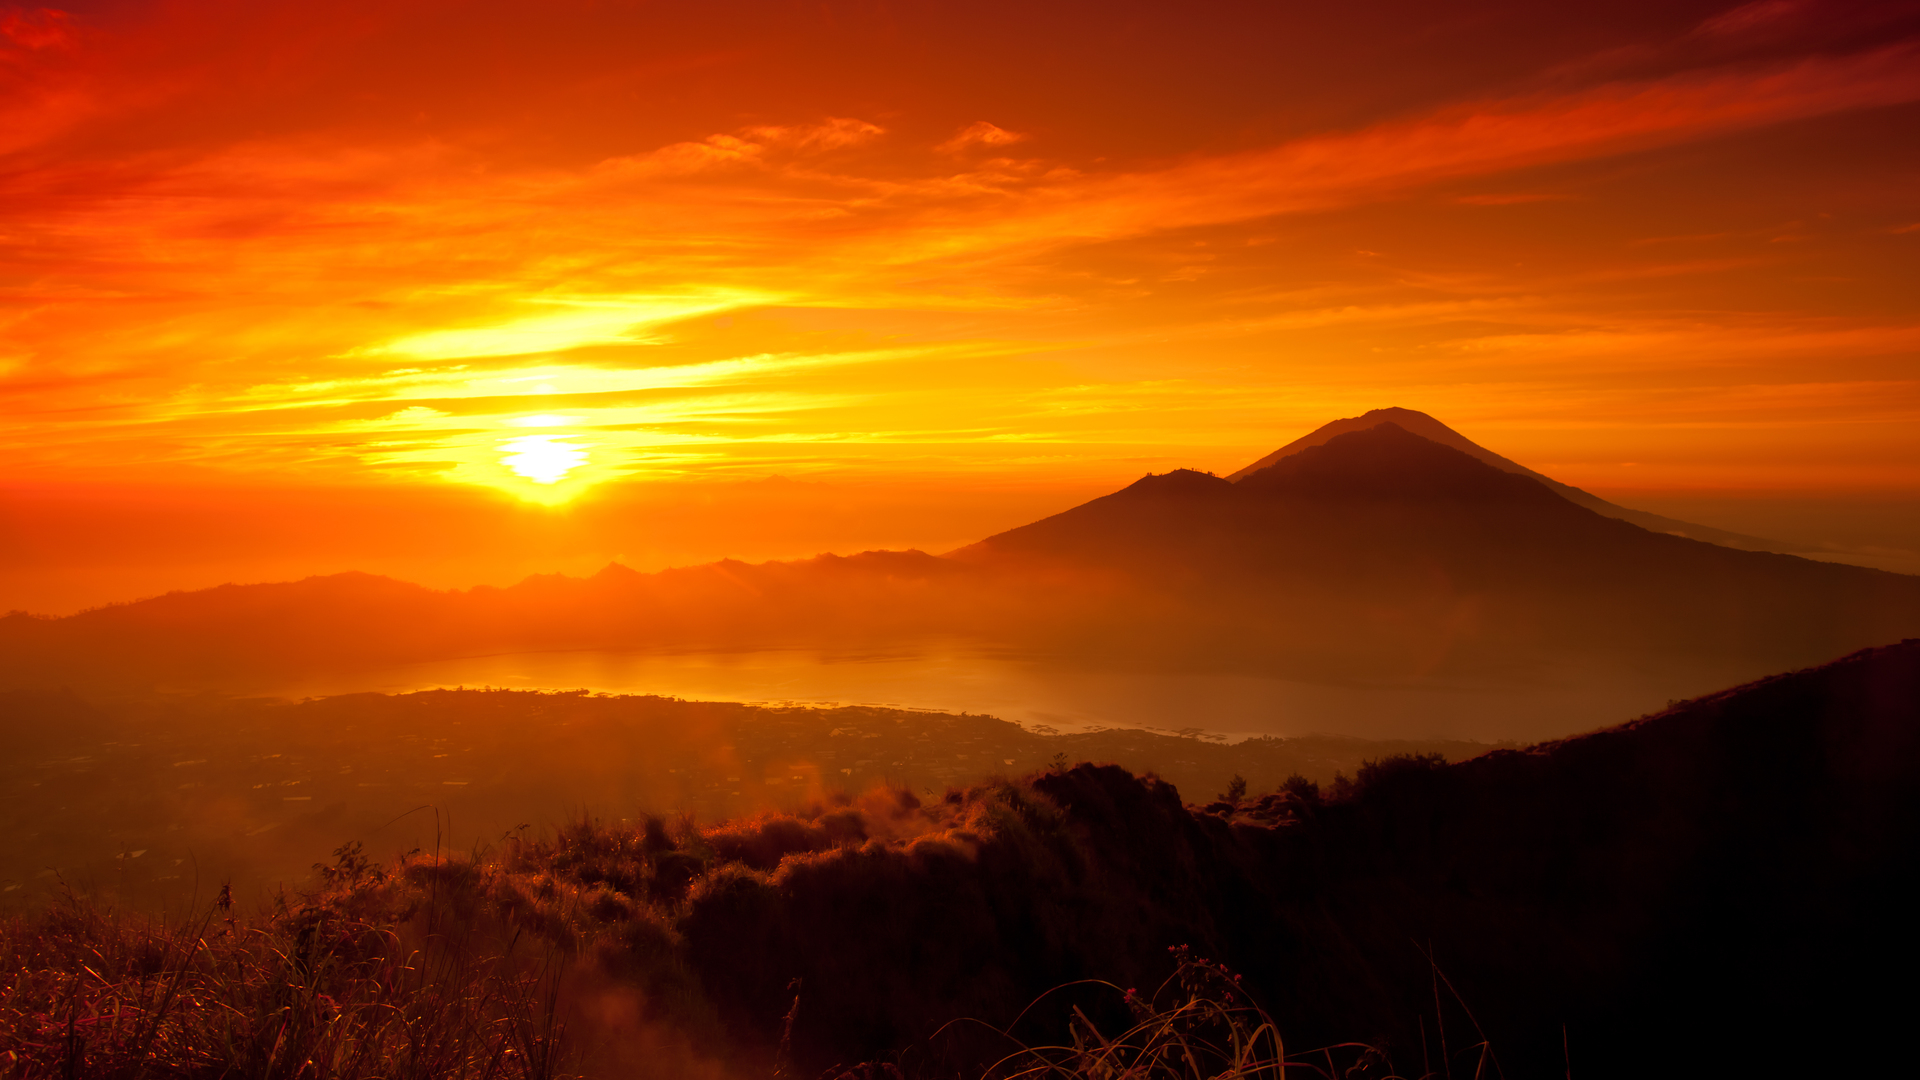 Fall Simply Southern Wallpapers 15 Gorgeous Hd Sunset Wallpapers